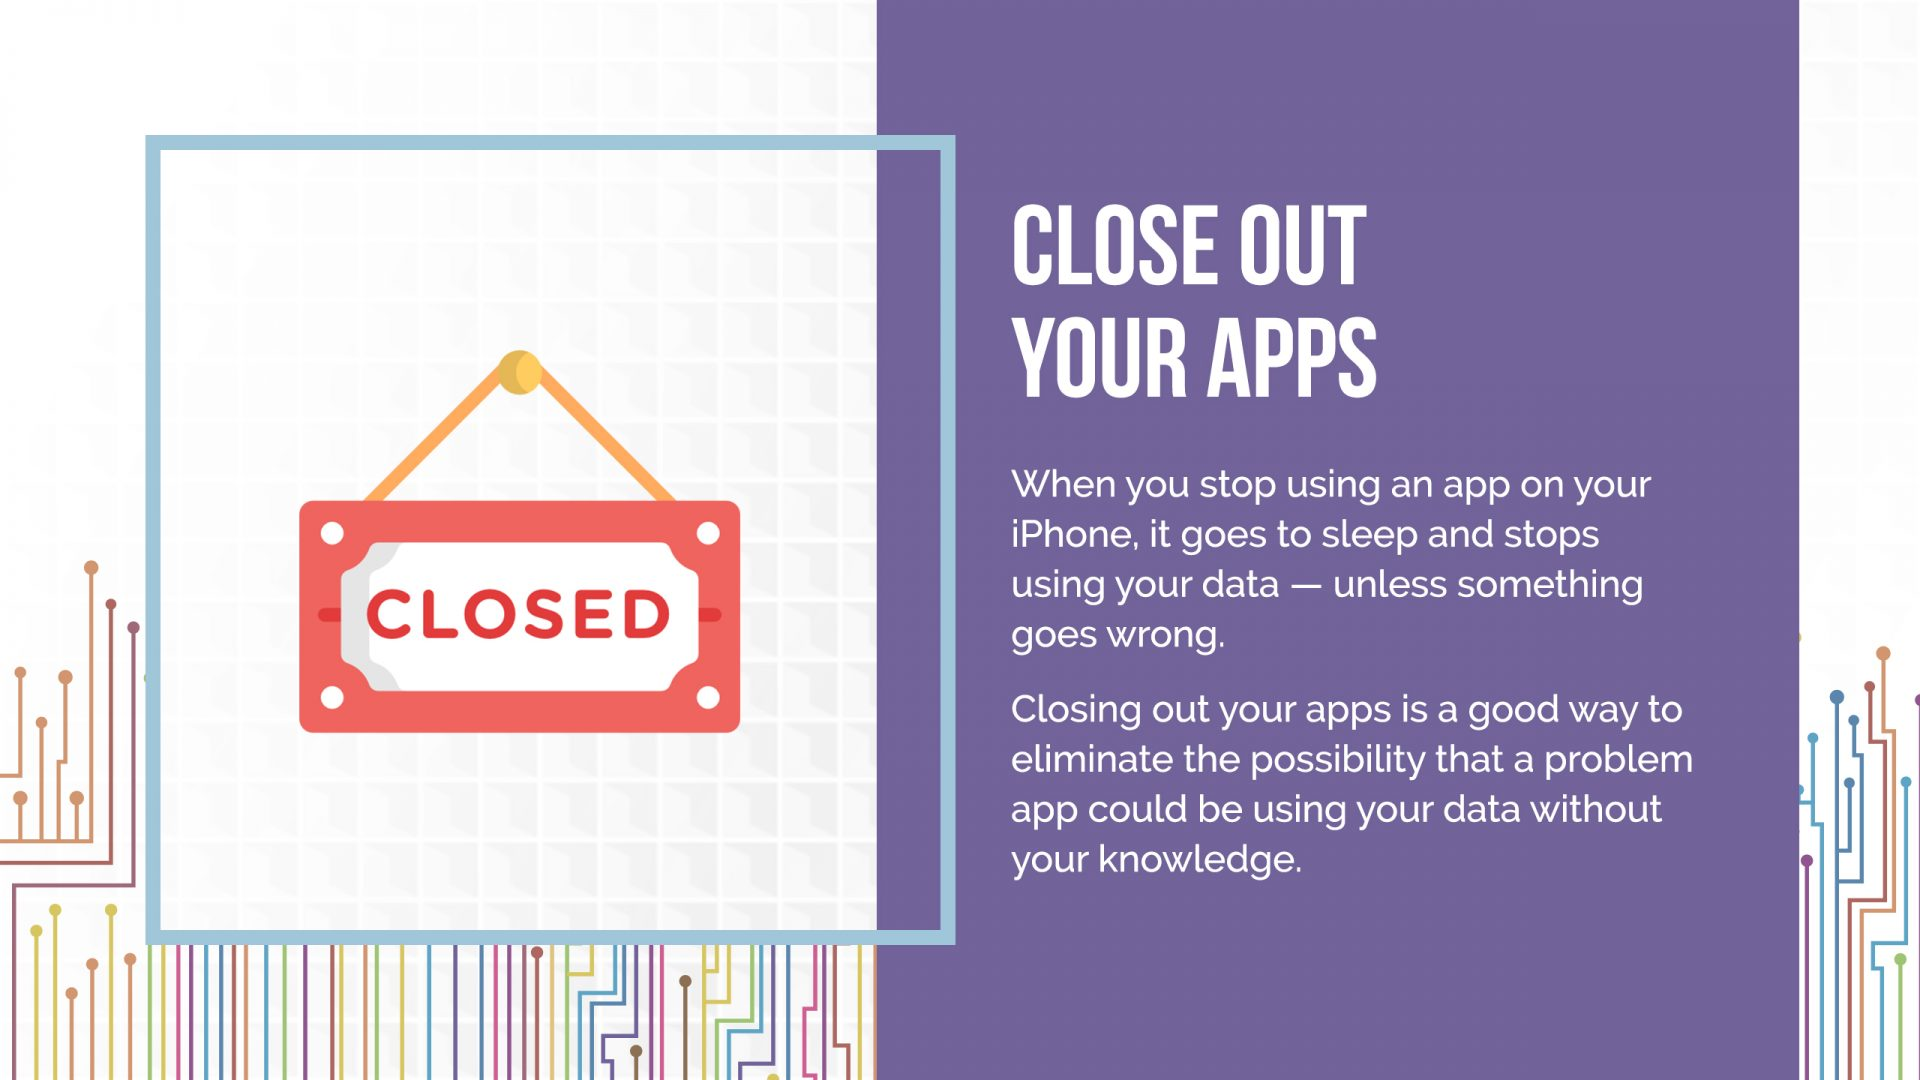 closing out apps on iphone